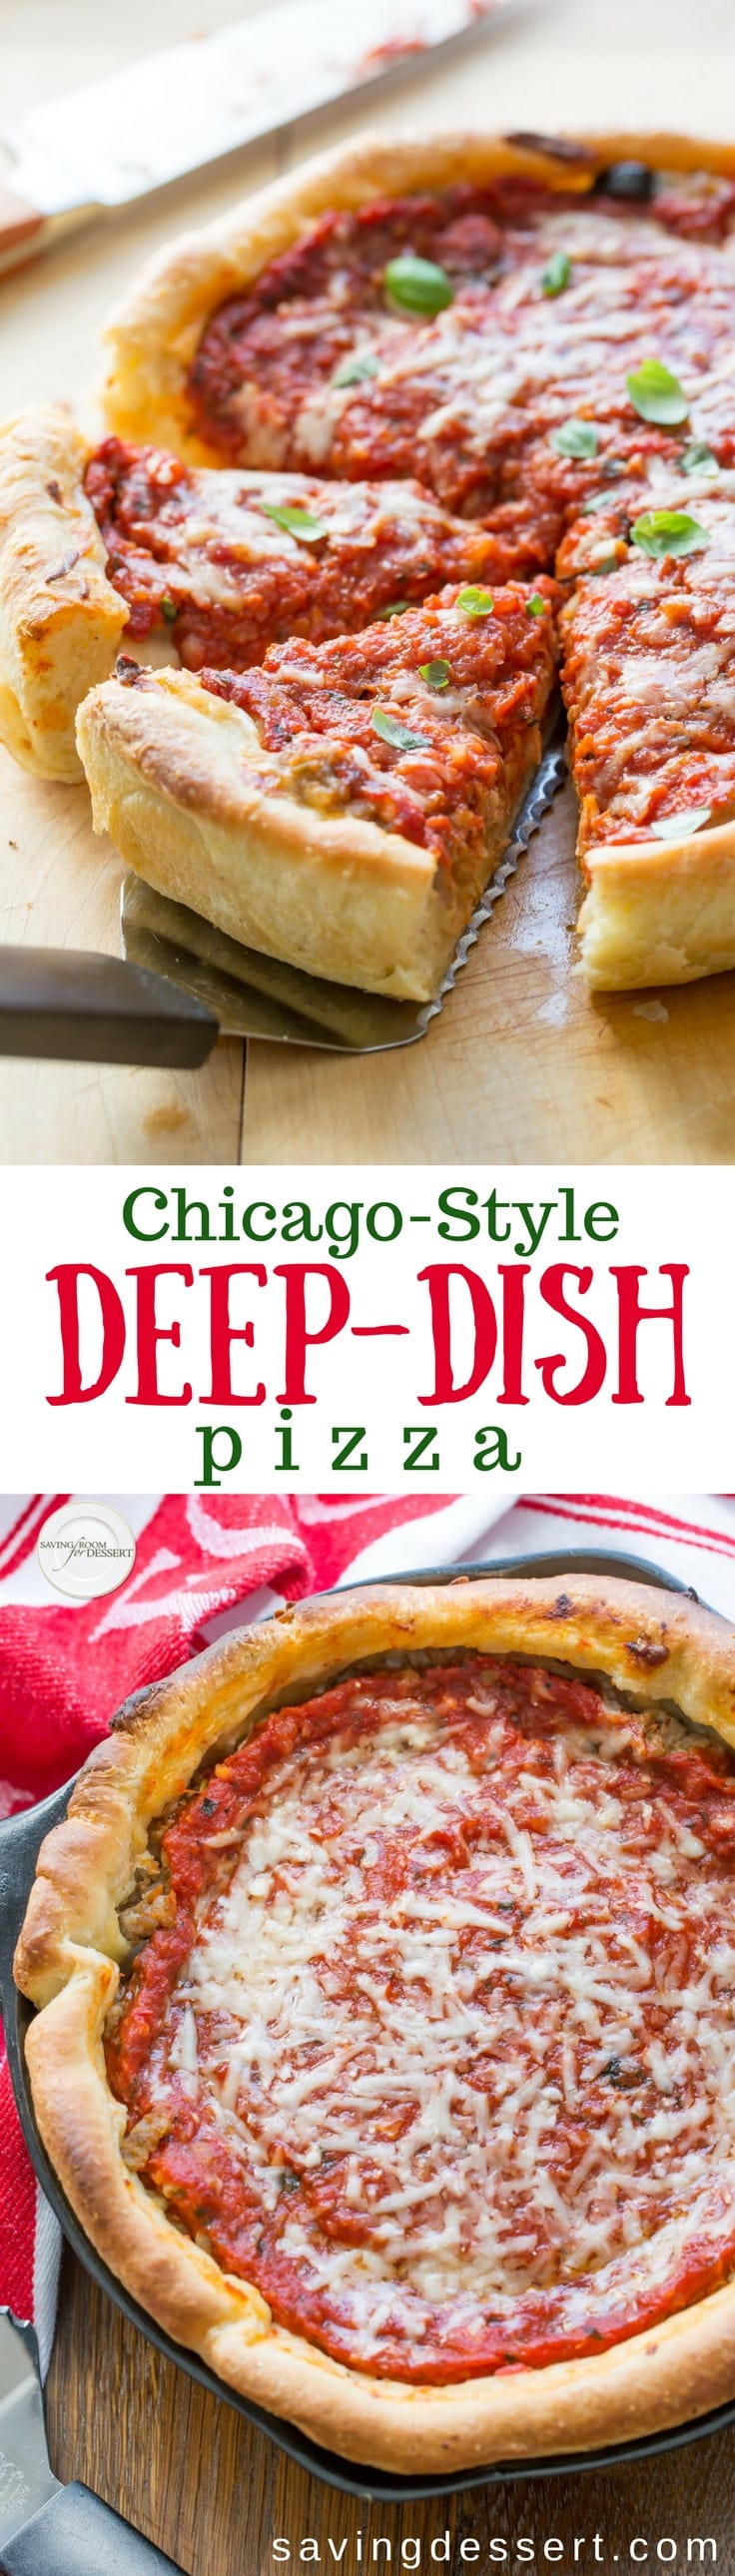 You're going to love this Chicago-Style Deep-Dish Pizza Recipe you can make at home! No need to travel all the way to Chicago for incredible pizza. Try this easy, detailed recipe with step-by-step directions for a thick and buttery, flaky crust and a rich, chunky tomato sauce, with plenty of gooey cheese. #savingroomfordessert #pizza #deepdish #sausagepizza #chicagostylepizza